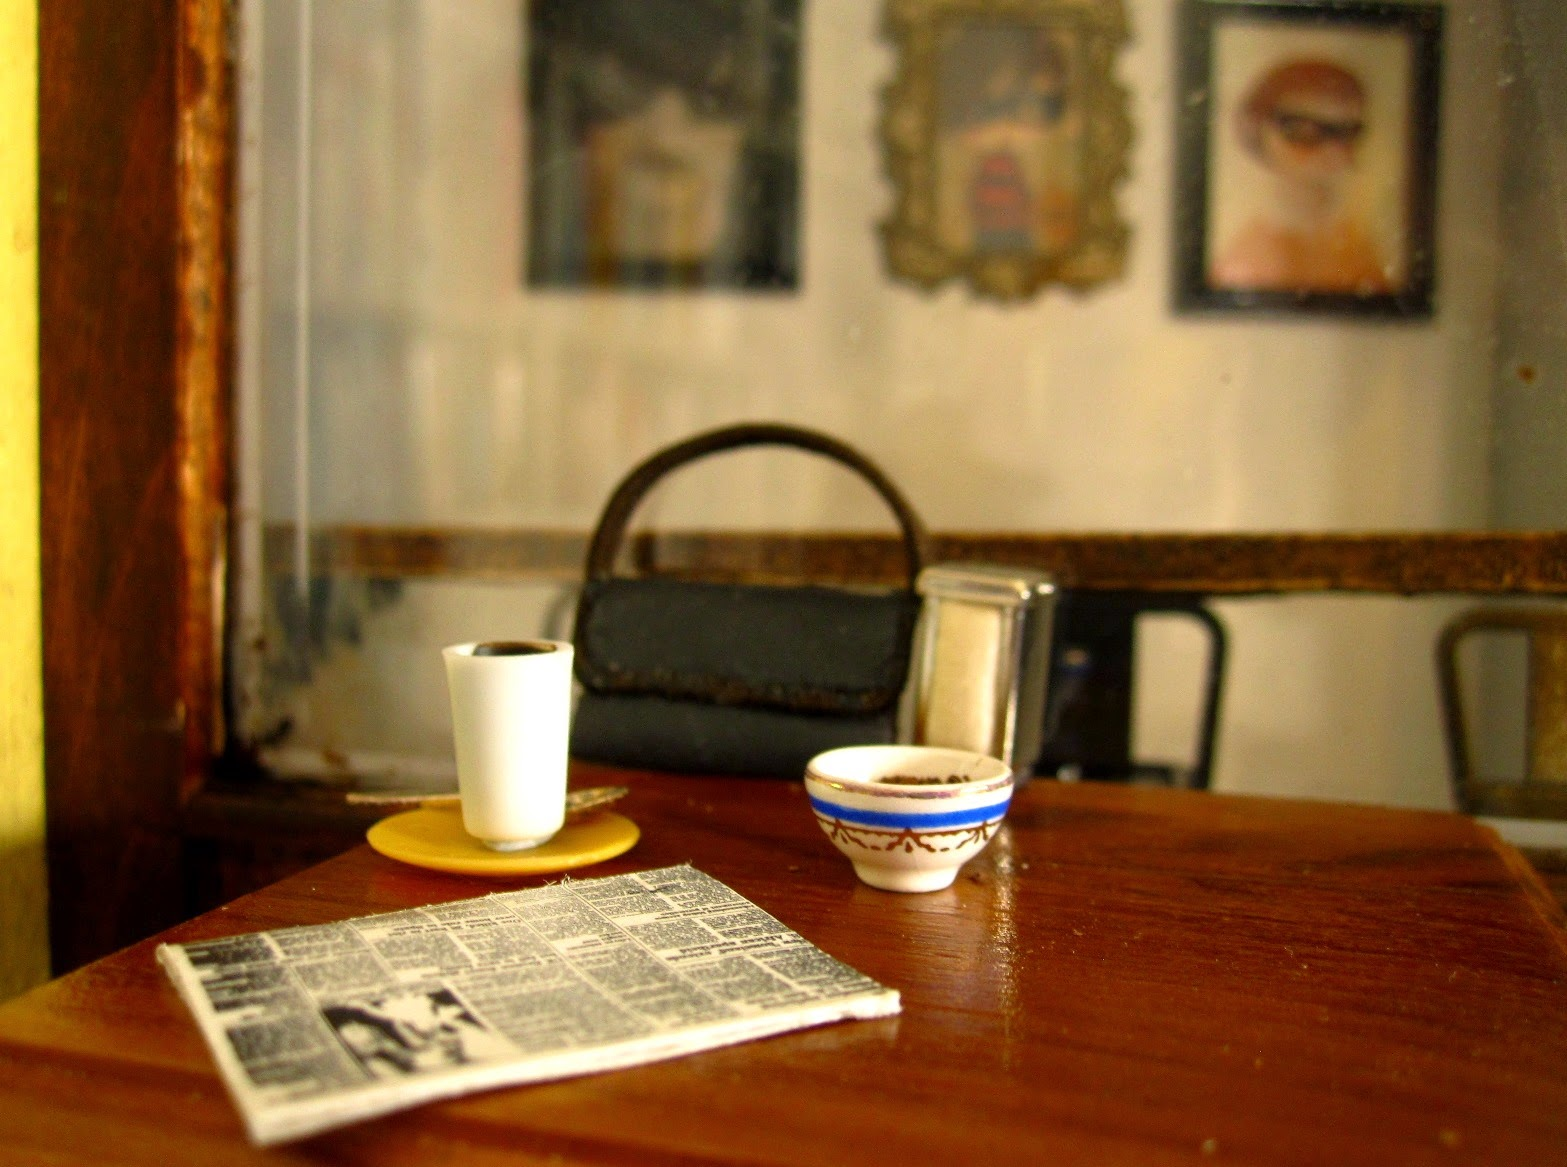 Modern dolls' house miniature cafe table with a newspaper, a latte, a sugar bowl and a handbag on it.